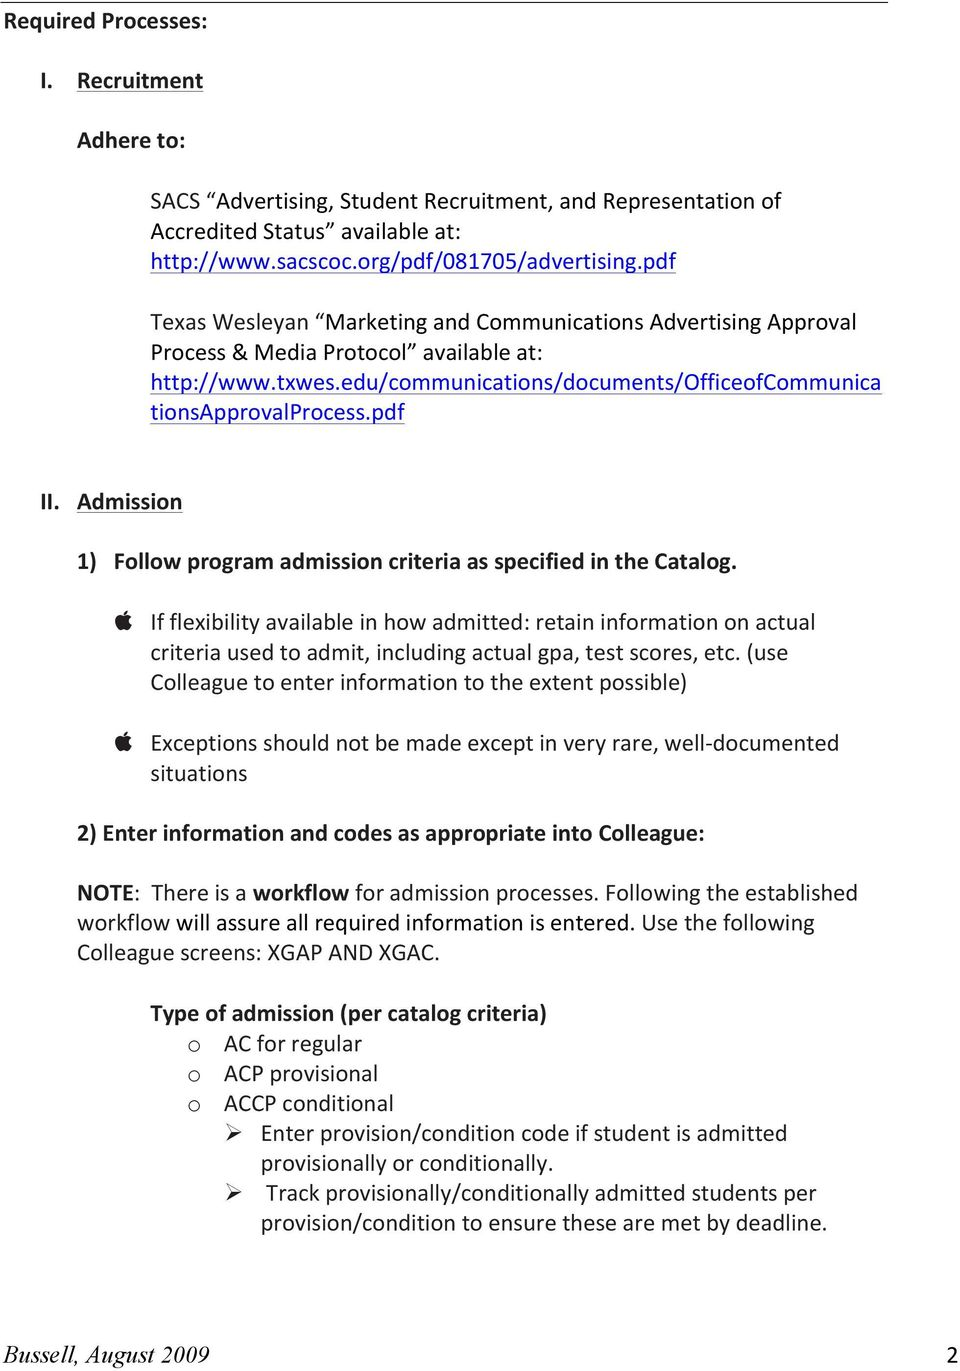 Admission 1) Follow program admission criteria as specified in the Catalog.